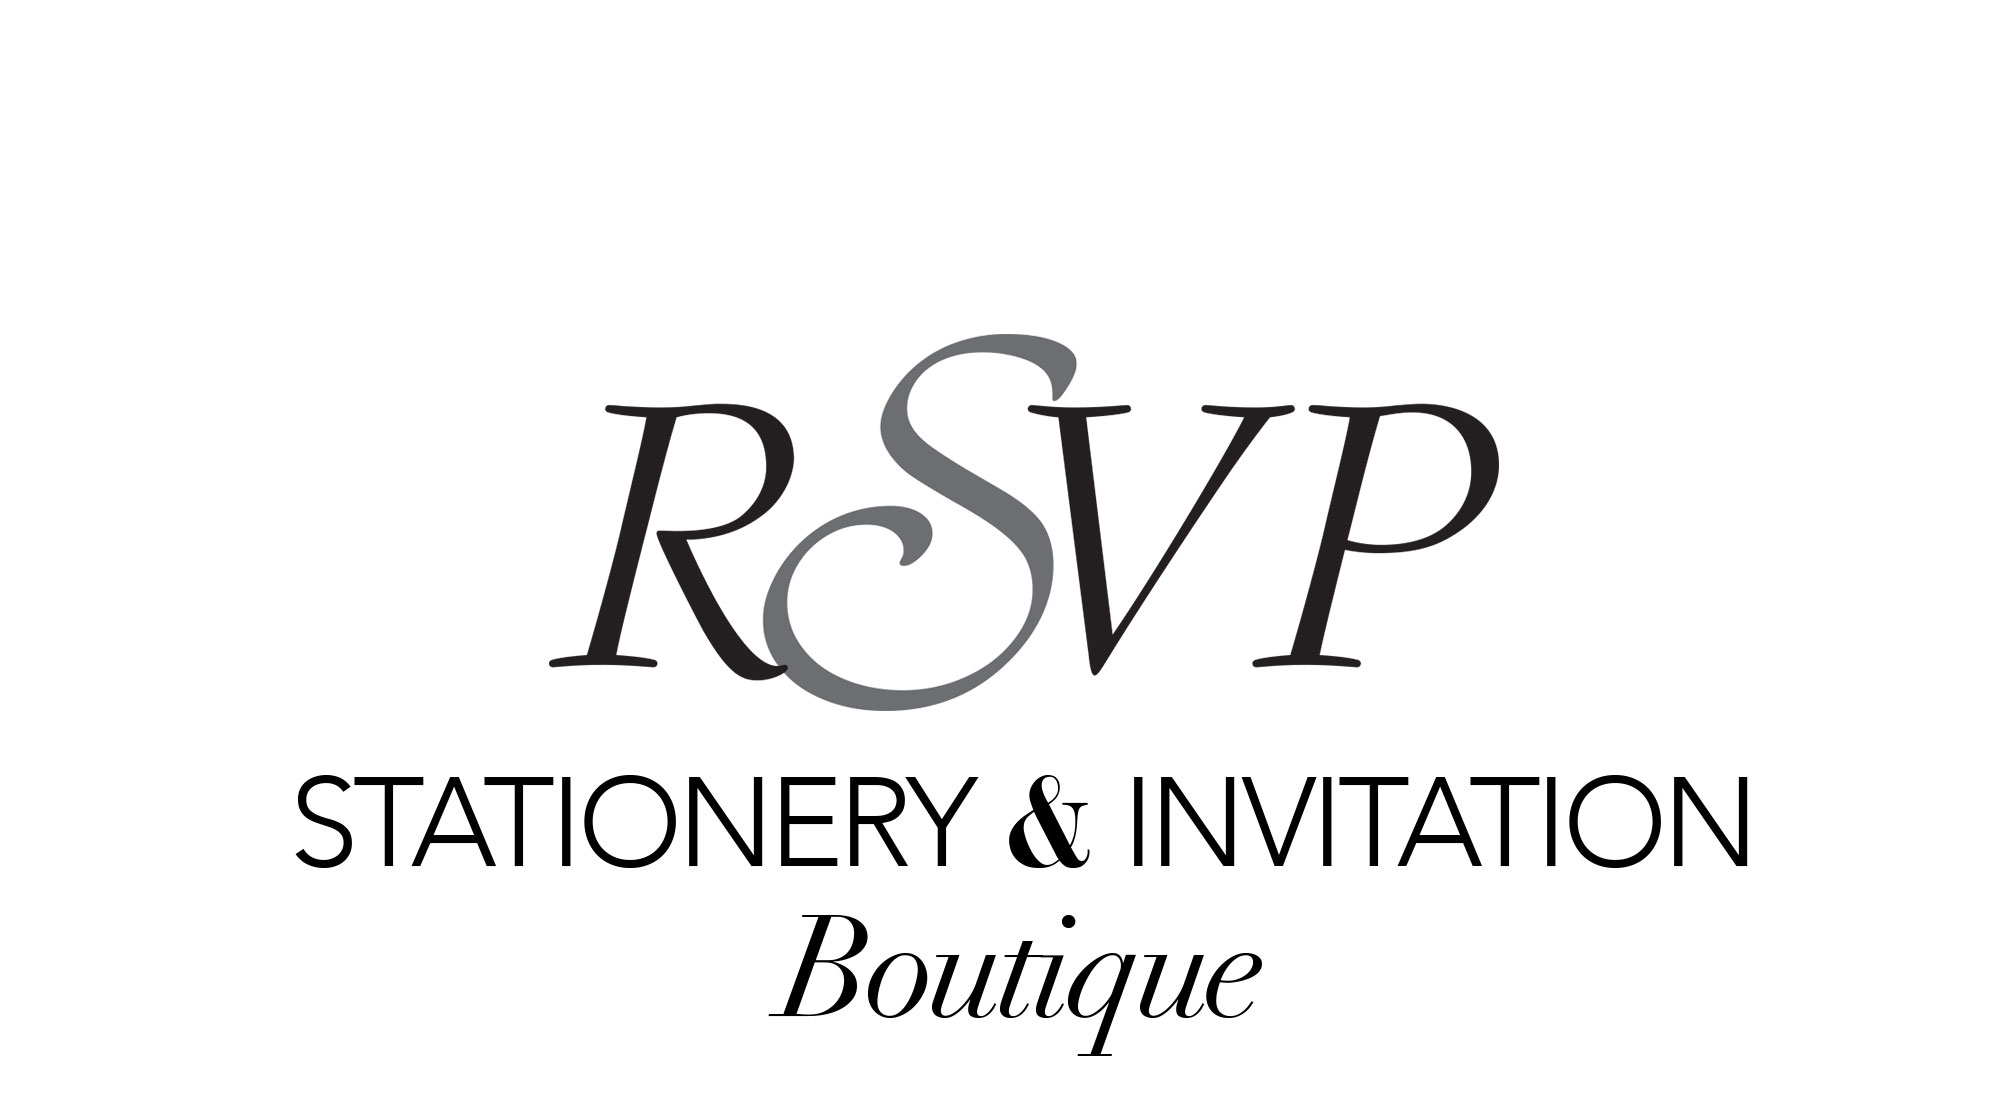 RSVP Stationery & Invitation Boutique